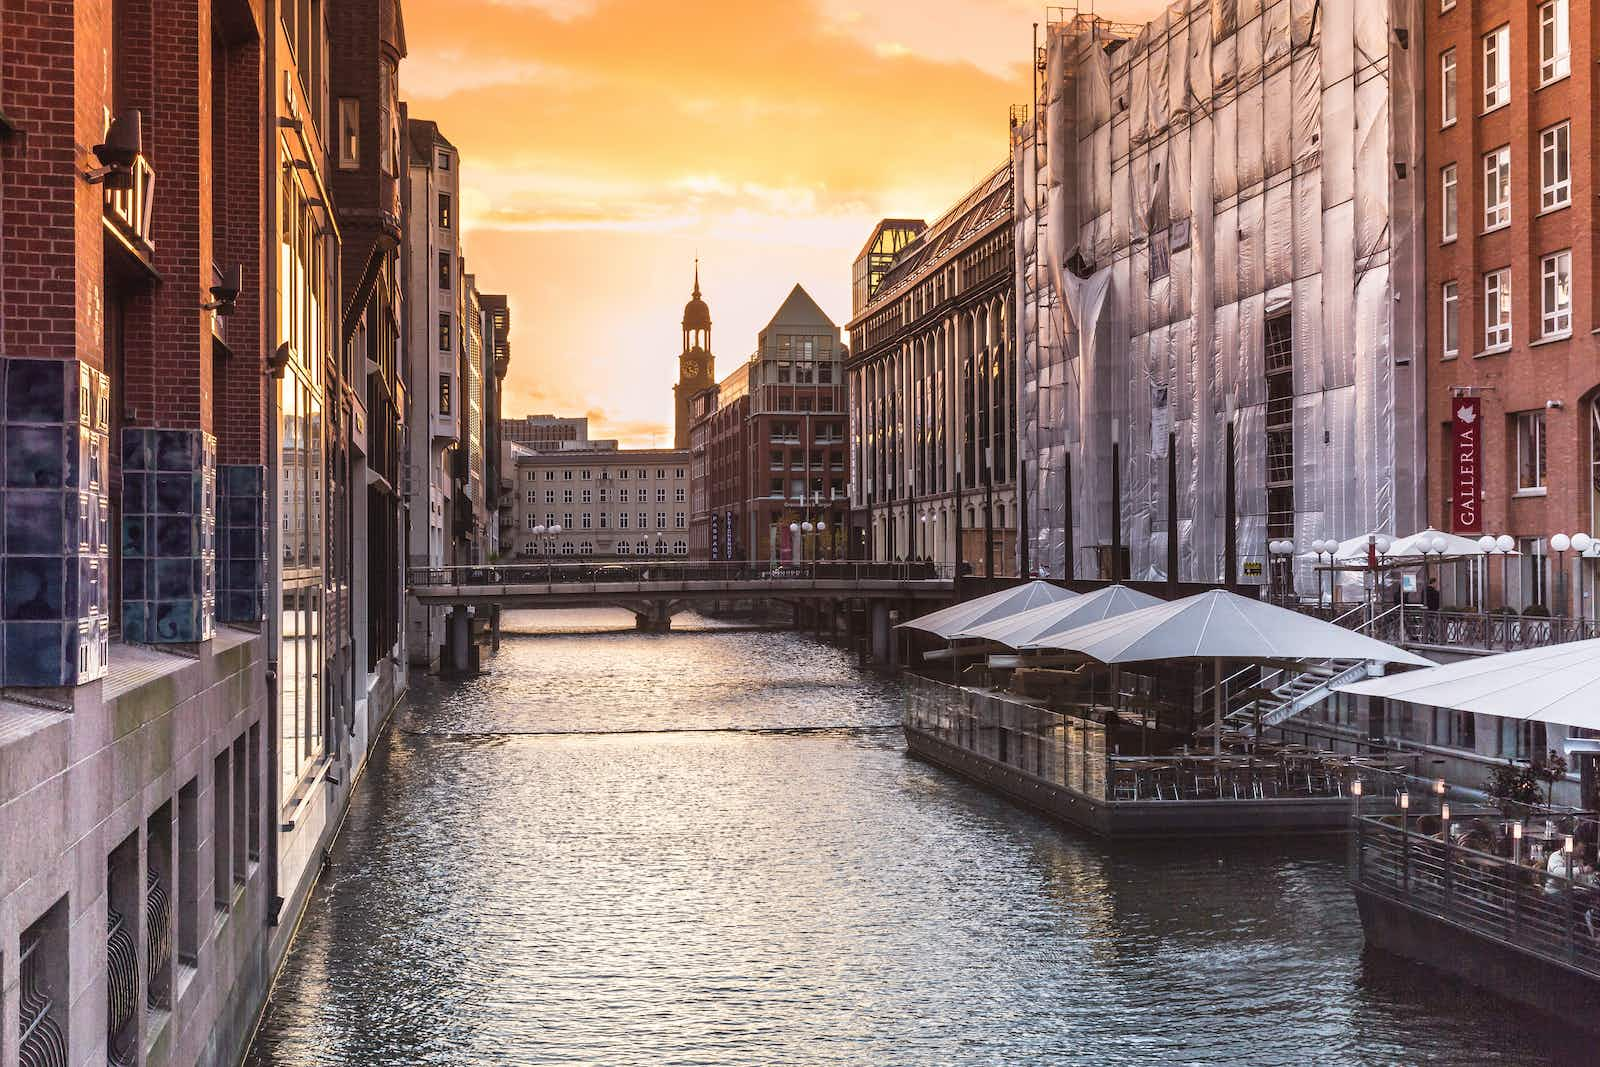 A view down the river in Hamburg with tall beautiful architecture on either side and the sun setting behind it; Copenhagen alternatives